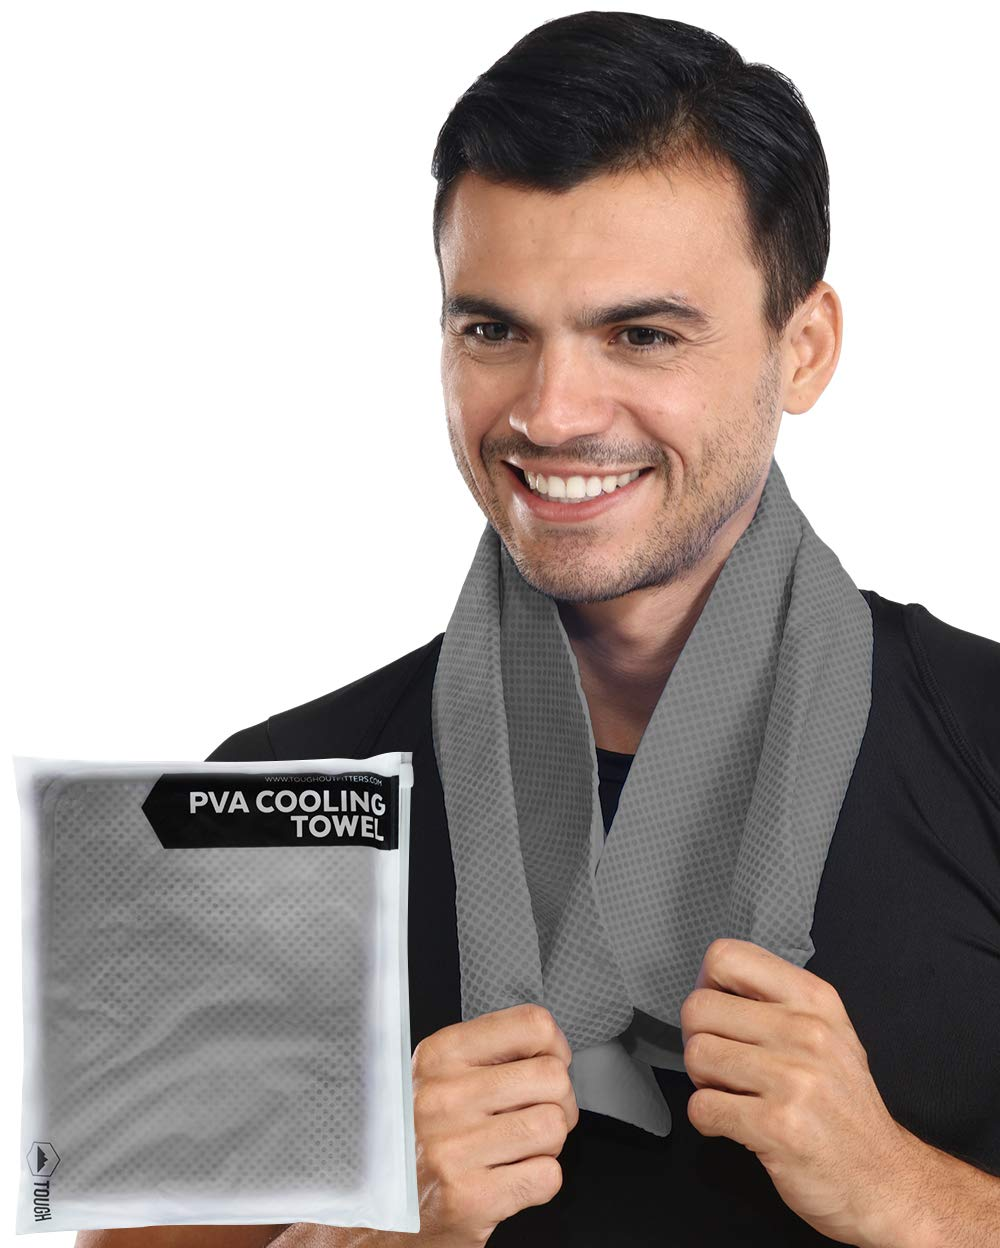 Cooling Towel - Cool Neck Wrap for Instant Relief - Cold Chilly Cloth for Summer Heat - Ideal for All Sports, Running, Hiking, Camping, Travels, Gym Workout, Fitness, Yoga & Golf - UPF 50